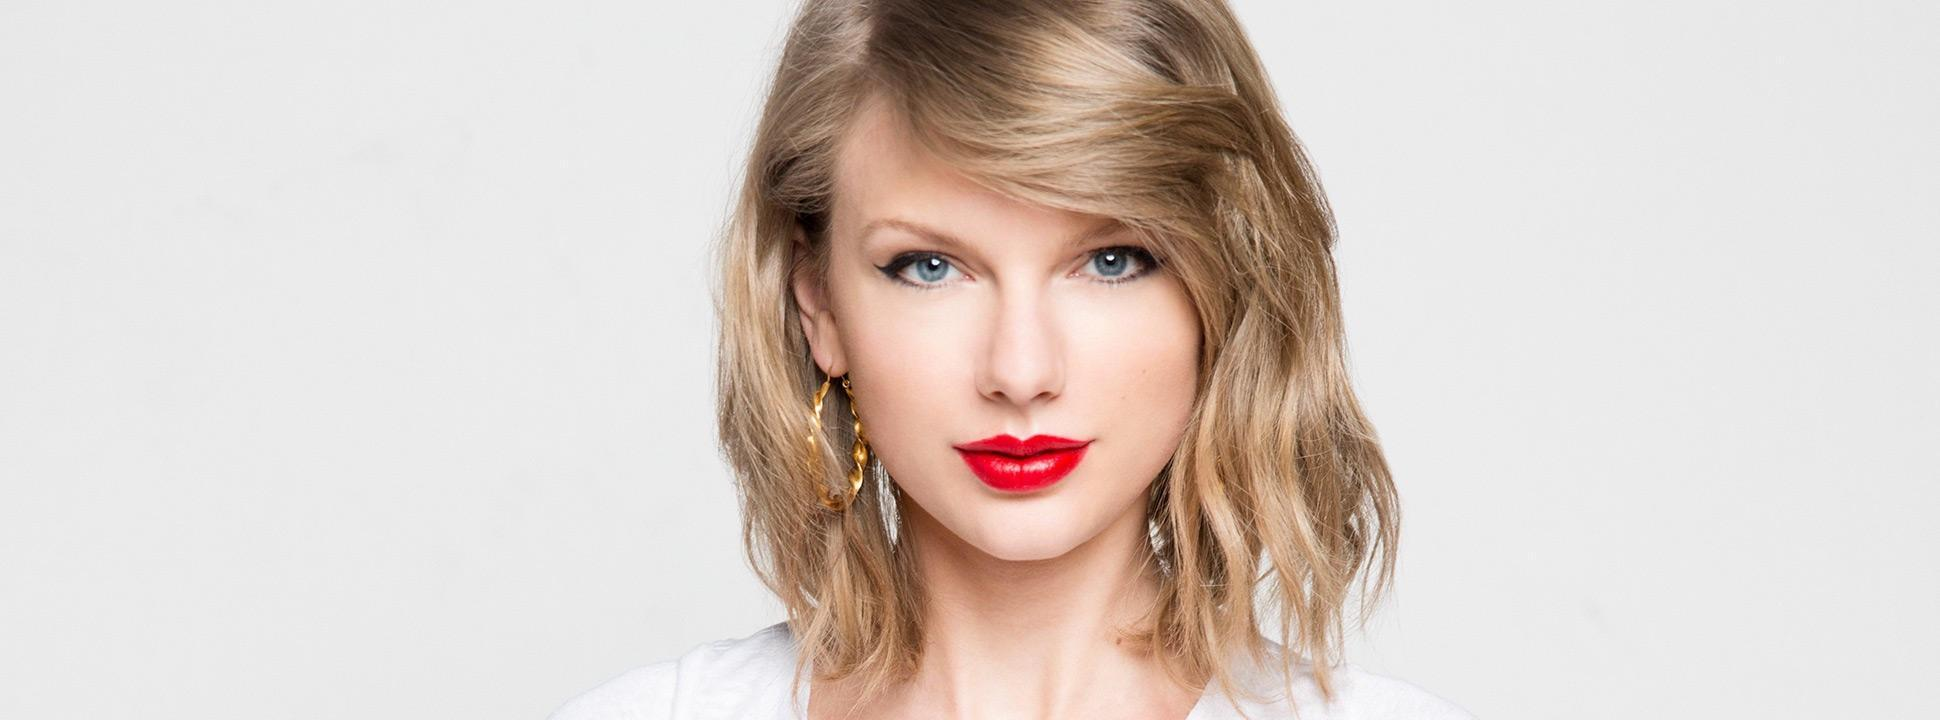 Taylor Swift's world tour title is named after the same year she was born. Which year is that?